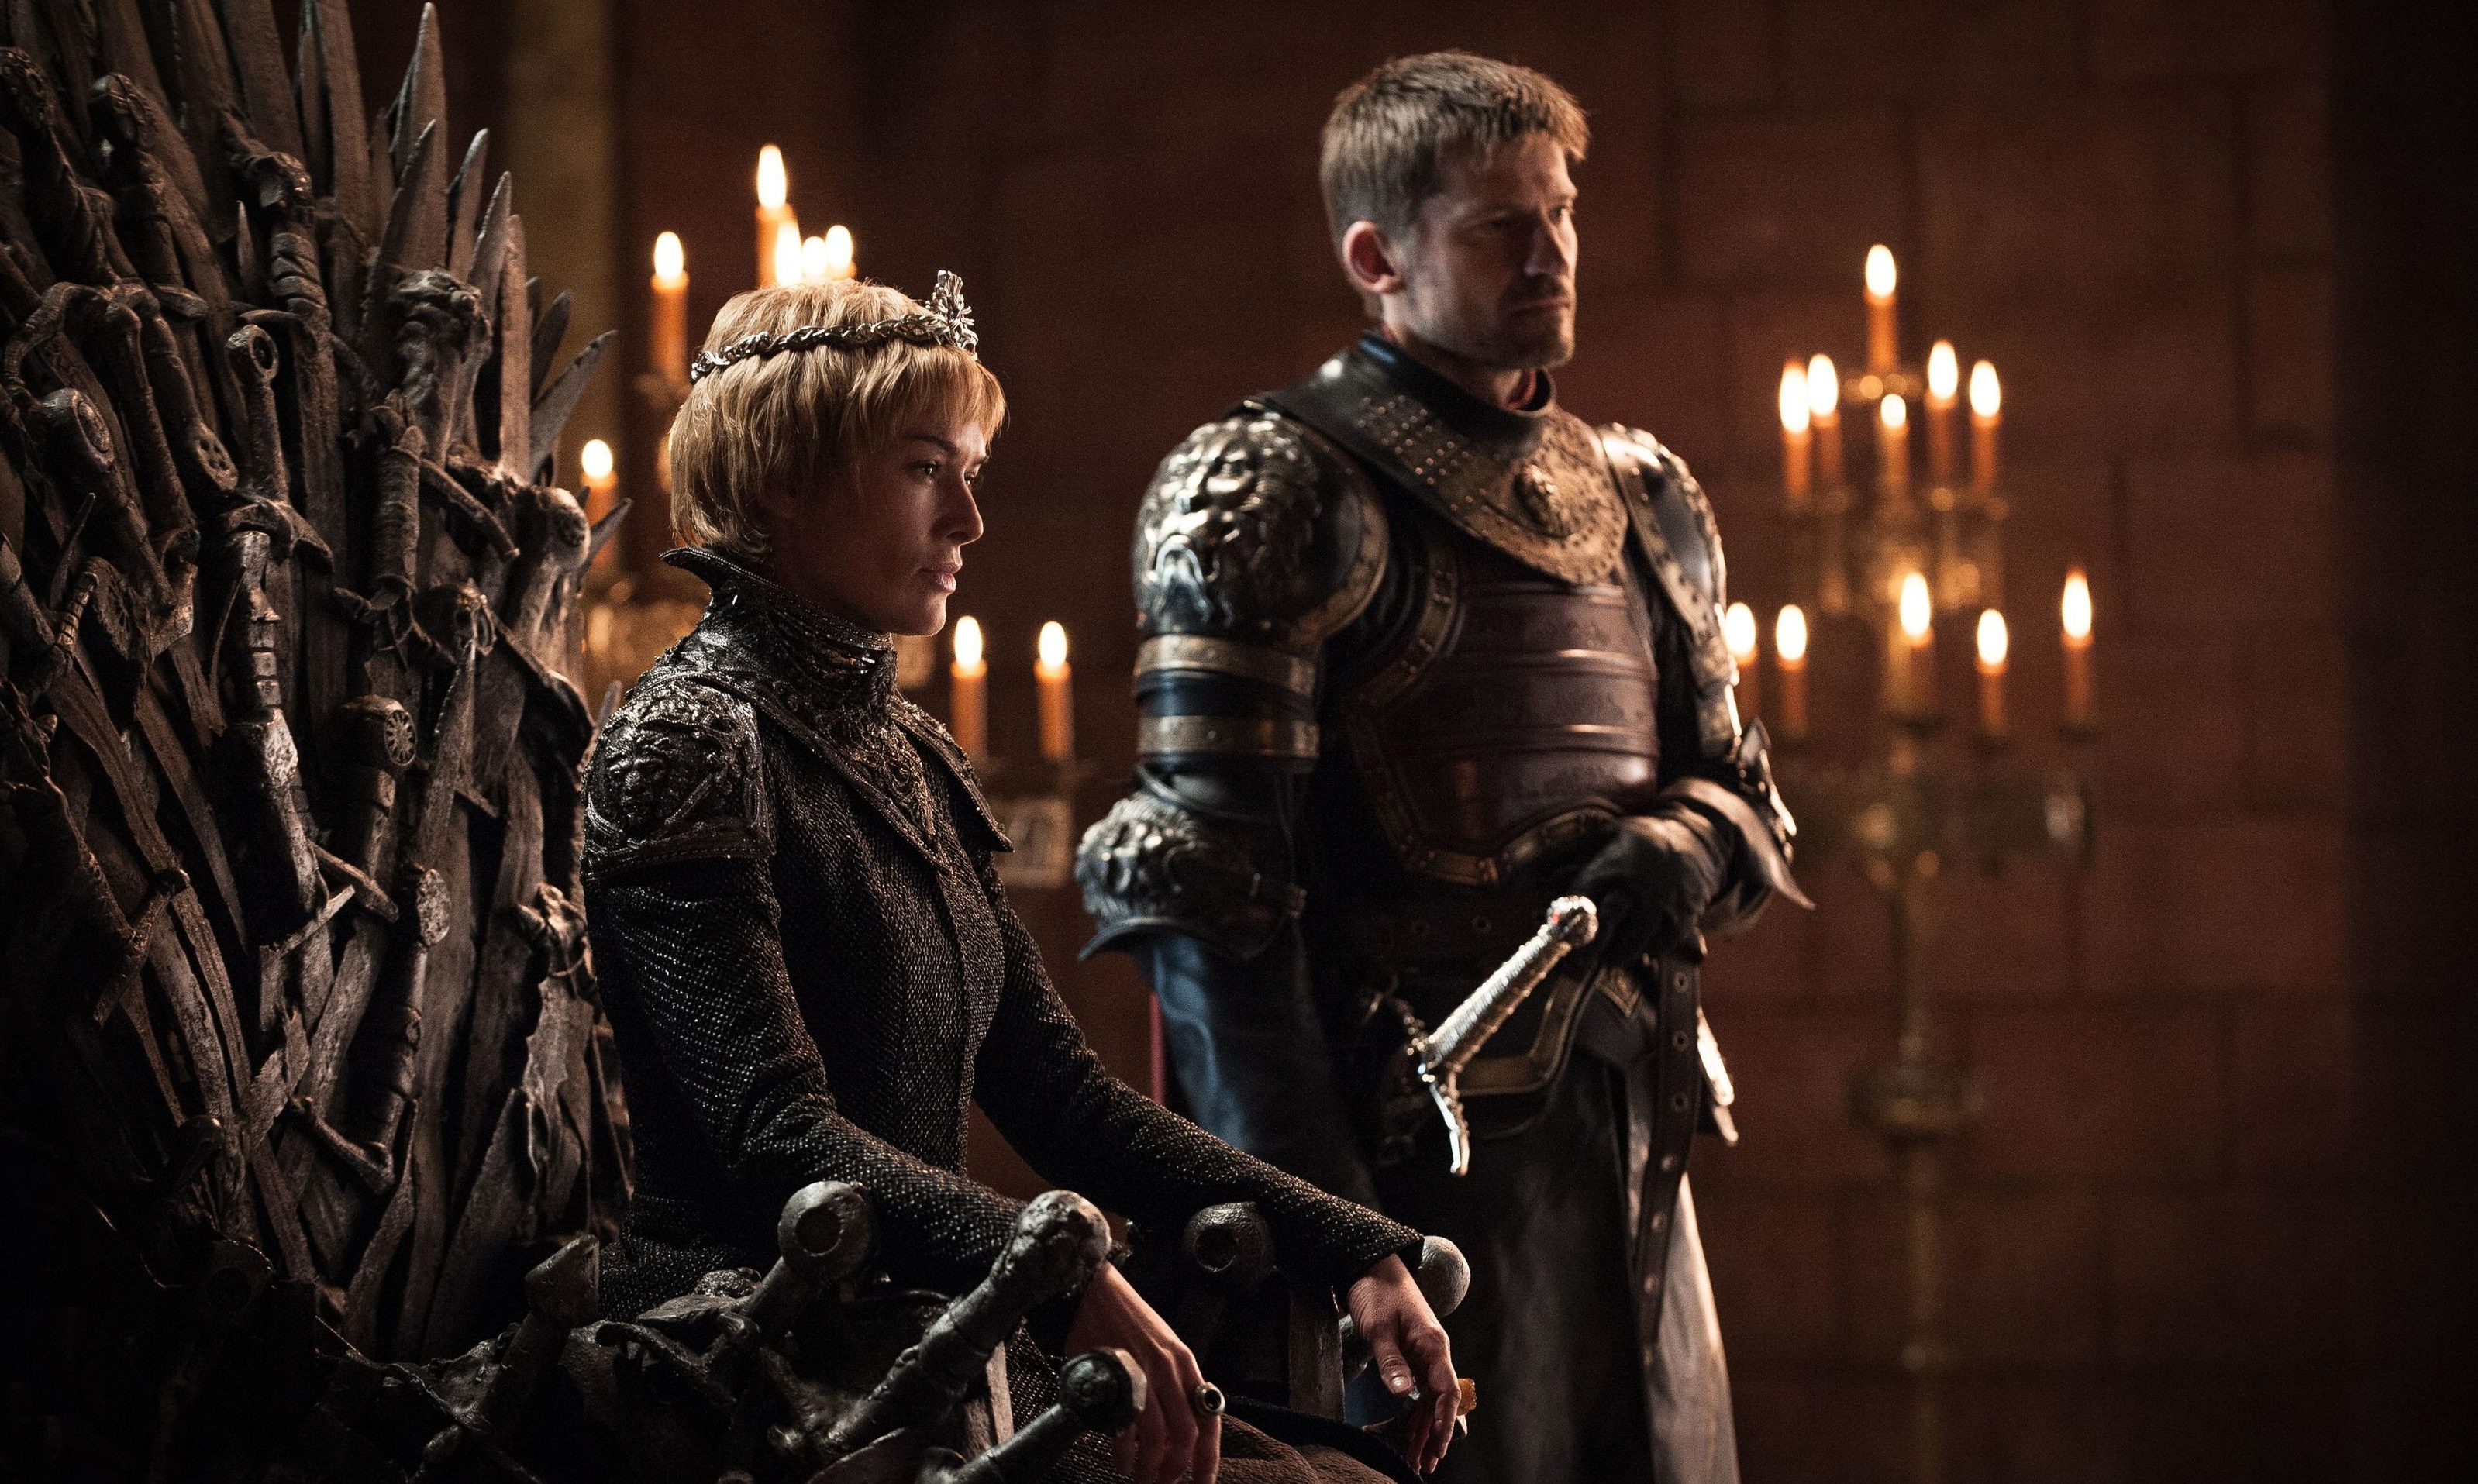 A scene from Game of Thrones,